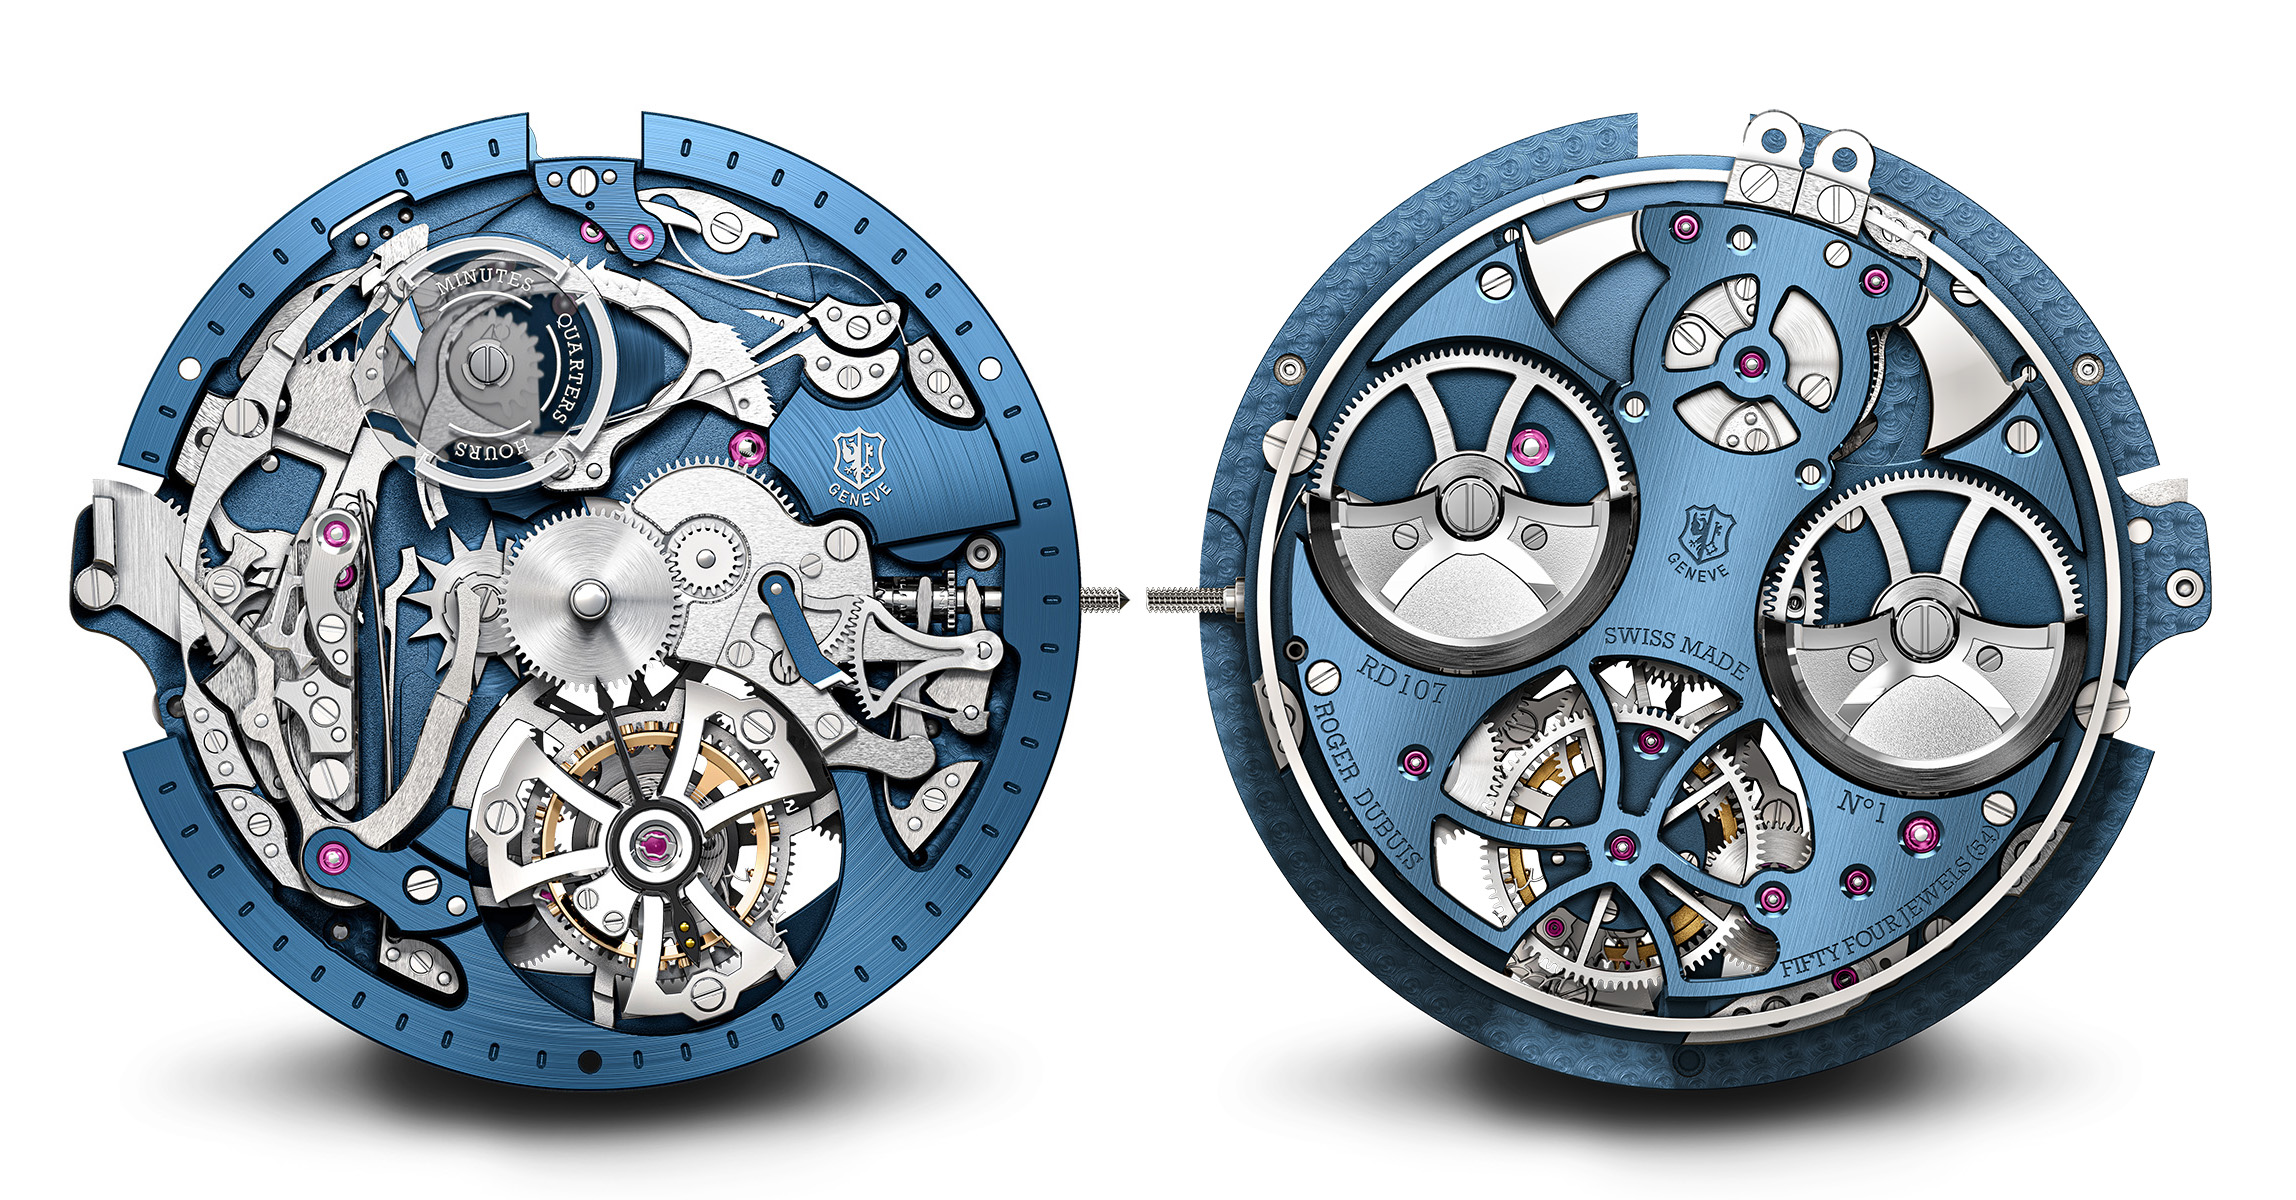 Gregory Bruttin has modernized the RD107 Roger Dubuis minute repeater for the 21st century with a visual presence. - www.revolution.watch